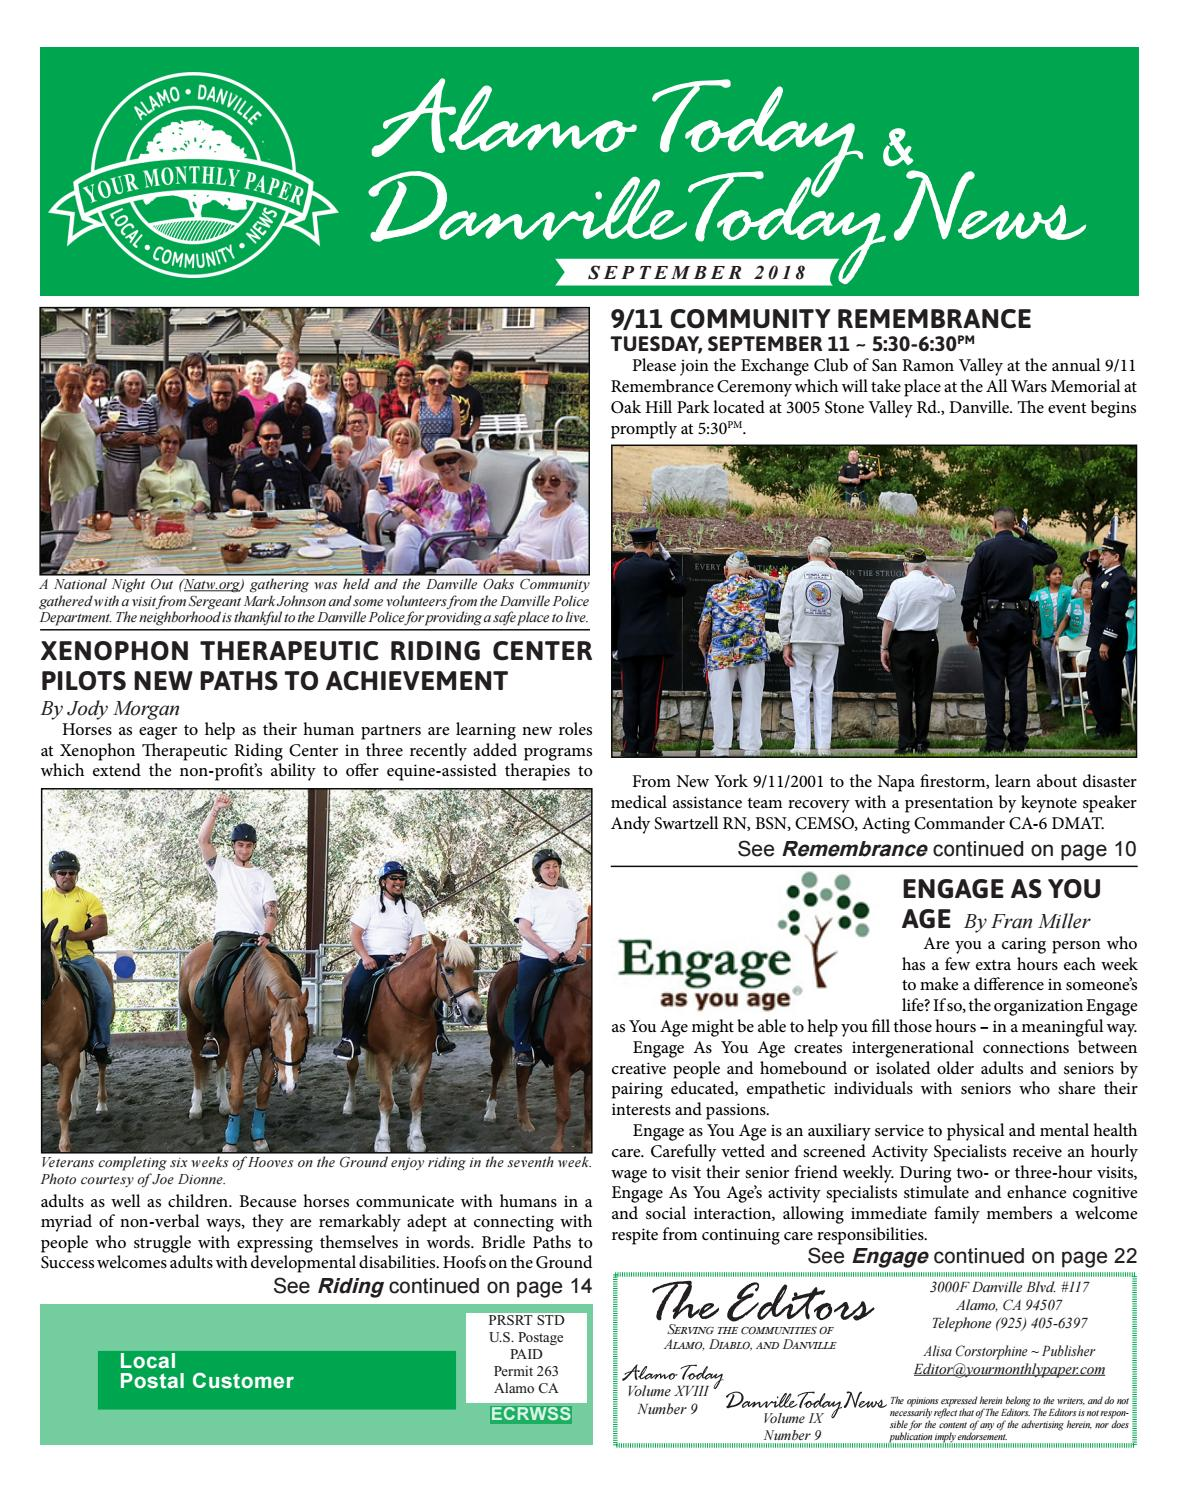 2018 SEPTEMBER – ALAMO TODAY & DANVILLE TODAY NEWS by The